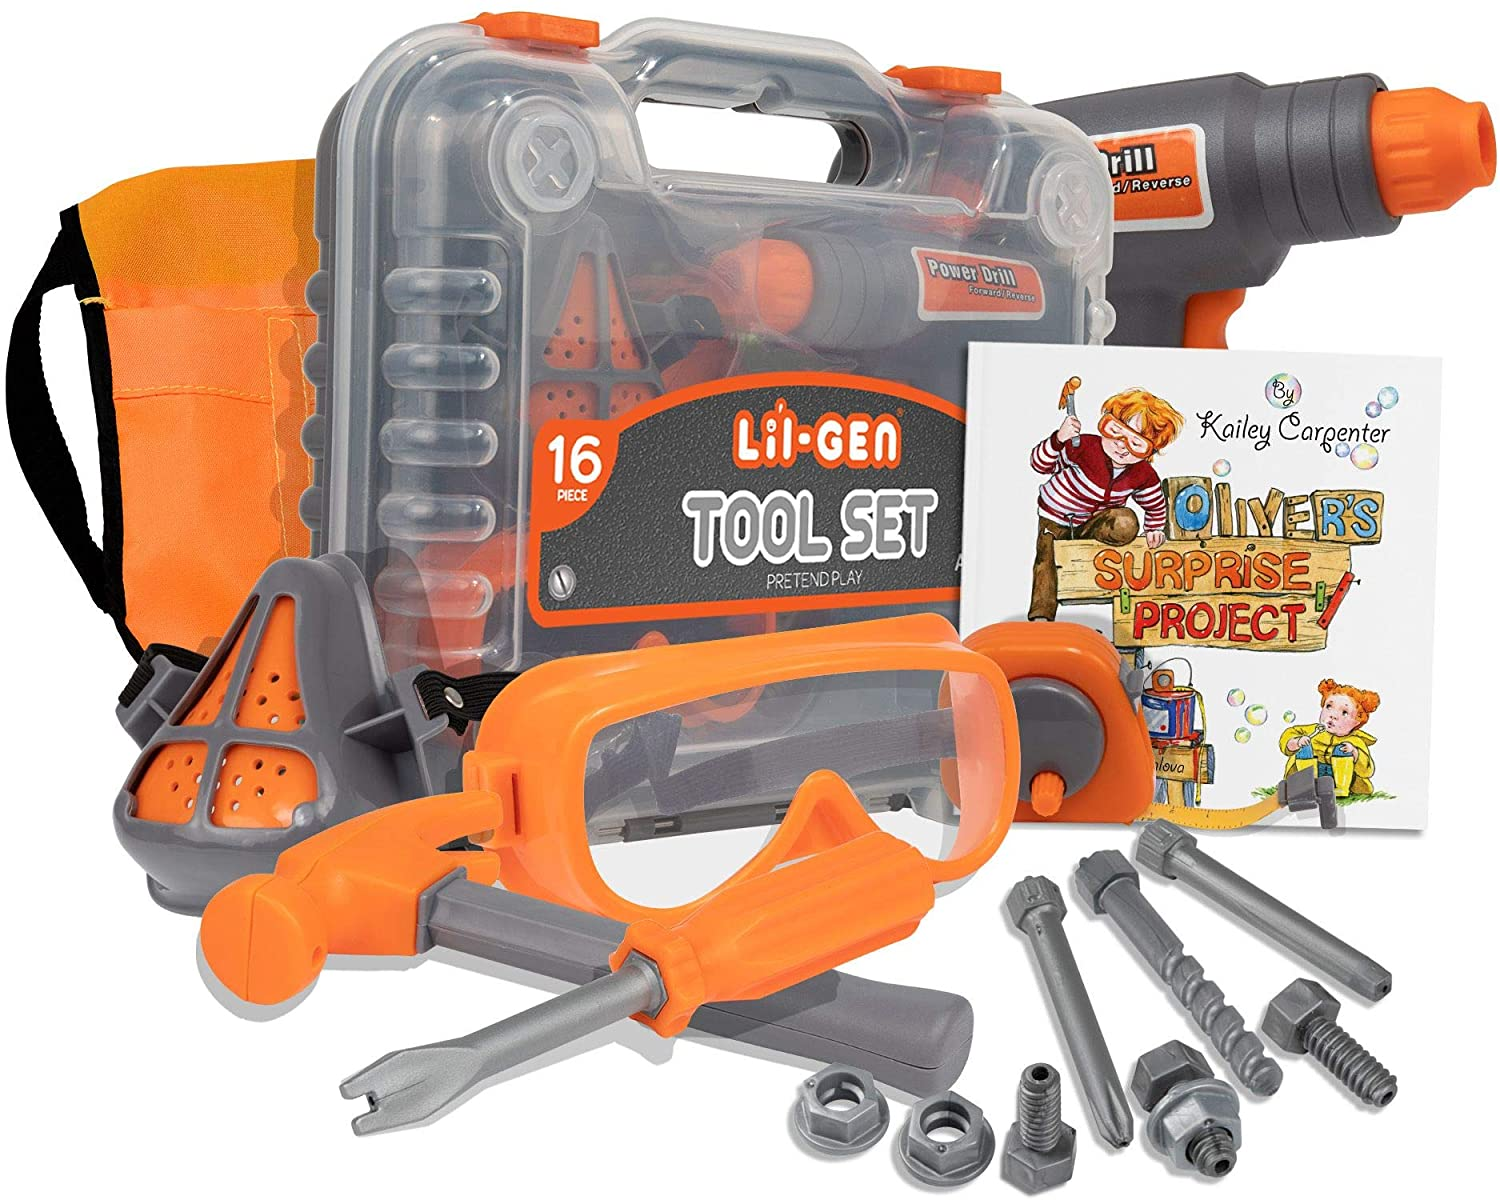 Li'l-Gen Kids Tool Set with Book, 16 Pieces Tools Plus Case - Includes Oliver's Surprise Project! Book Pretend Play Toys for Boys and Girls Age 3+,